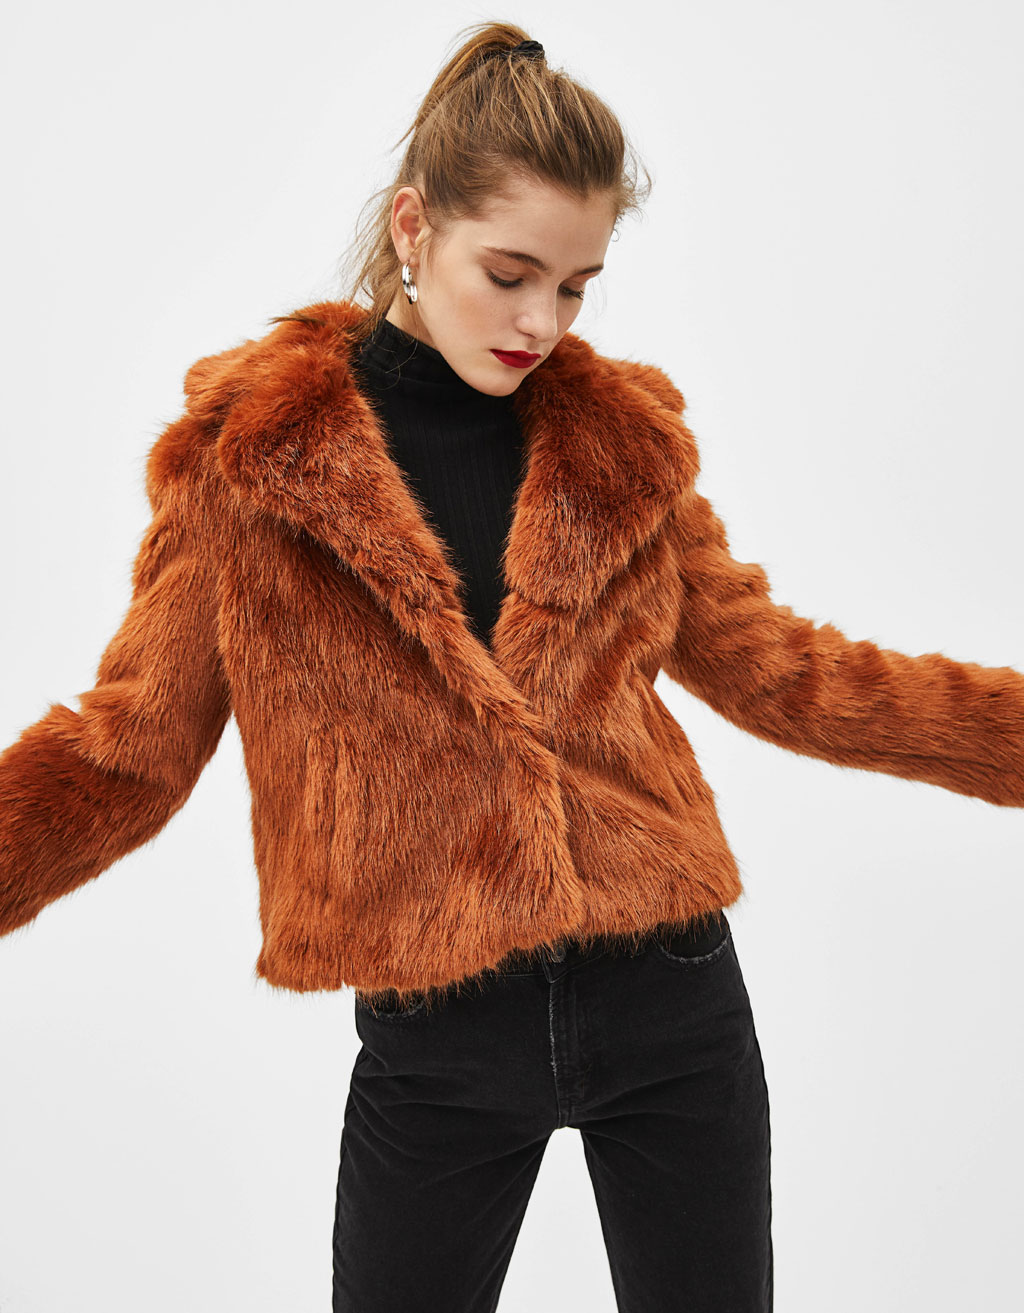 Short faux fur coat with lapel collar